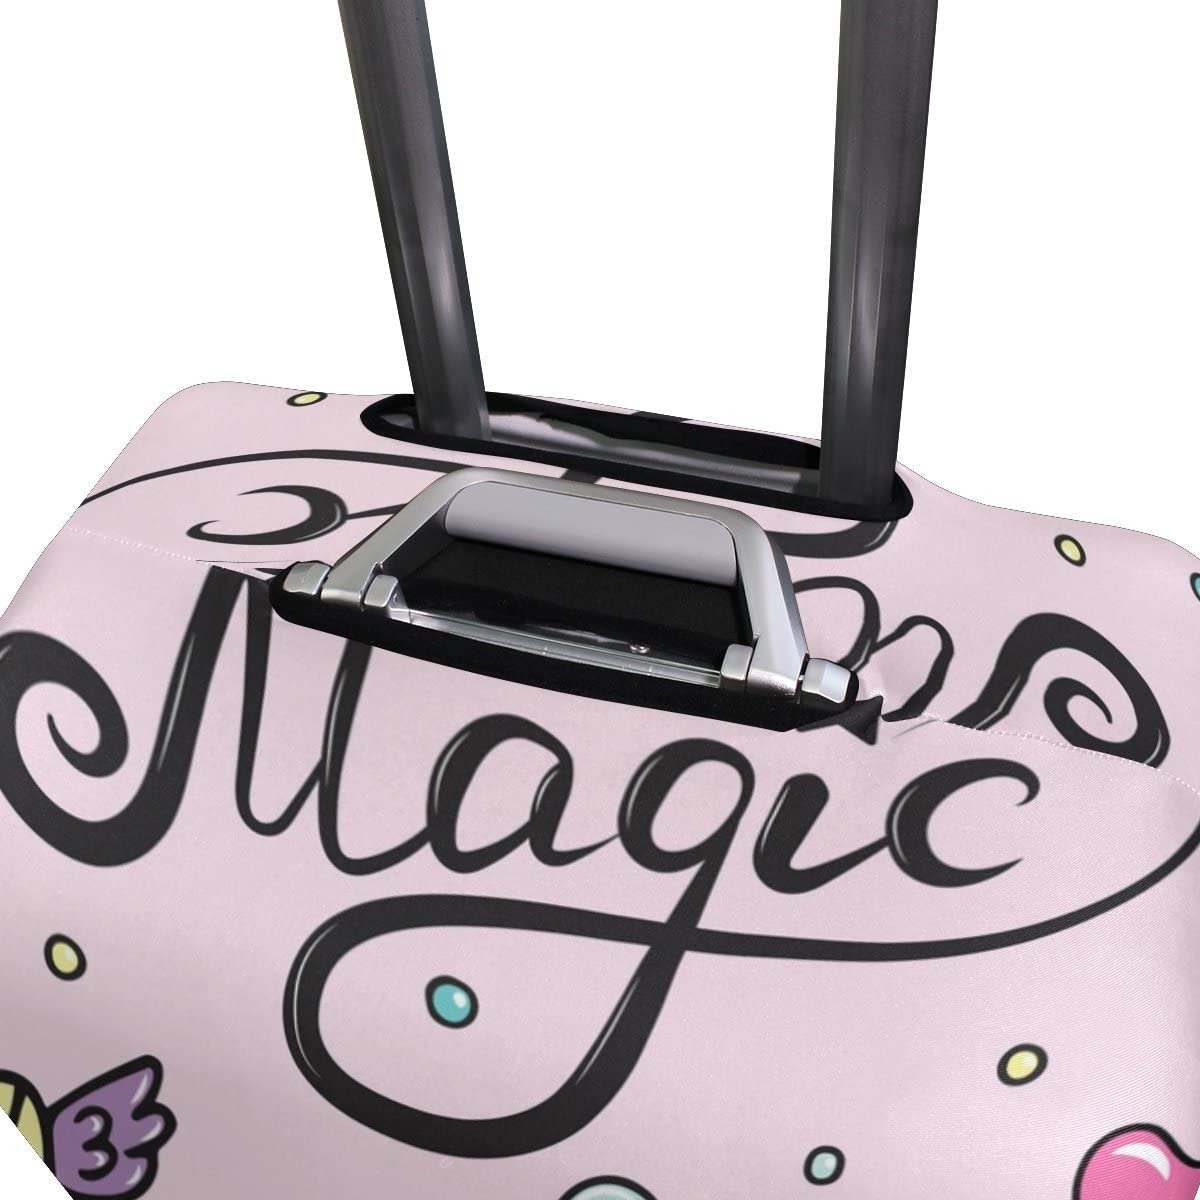 OREZI Luggage Protector Magic Unicorn Wand Heart-Sunglasses Travel Luggage Elastic Cover Suitcase Washable and Durable Anti-Scratch Stretchy Case Cover Fits 18-32 Inches